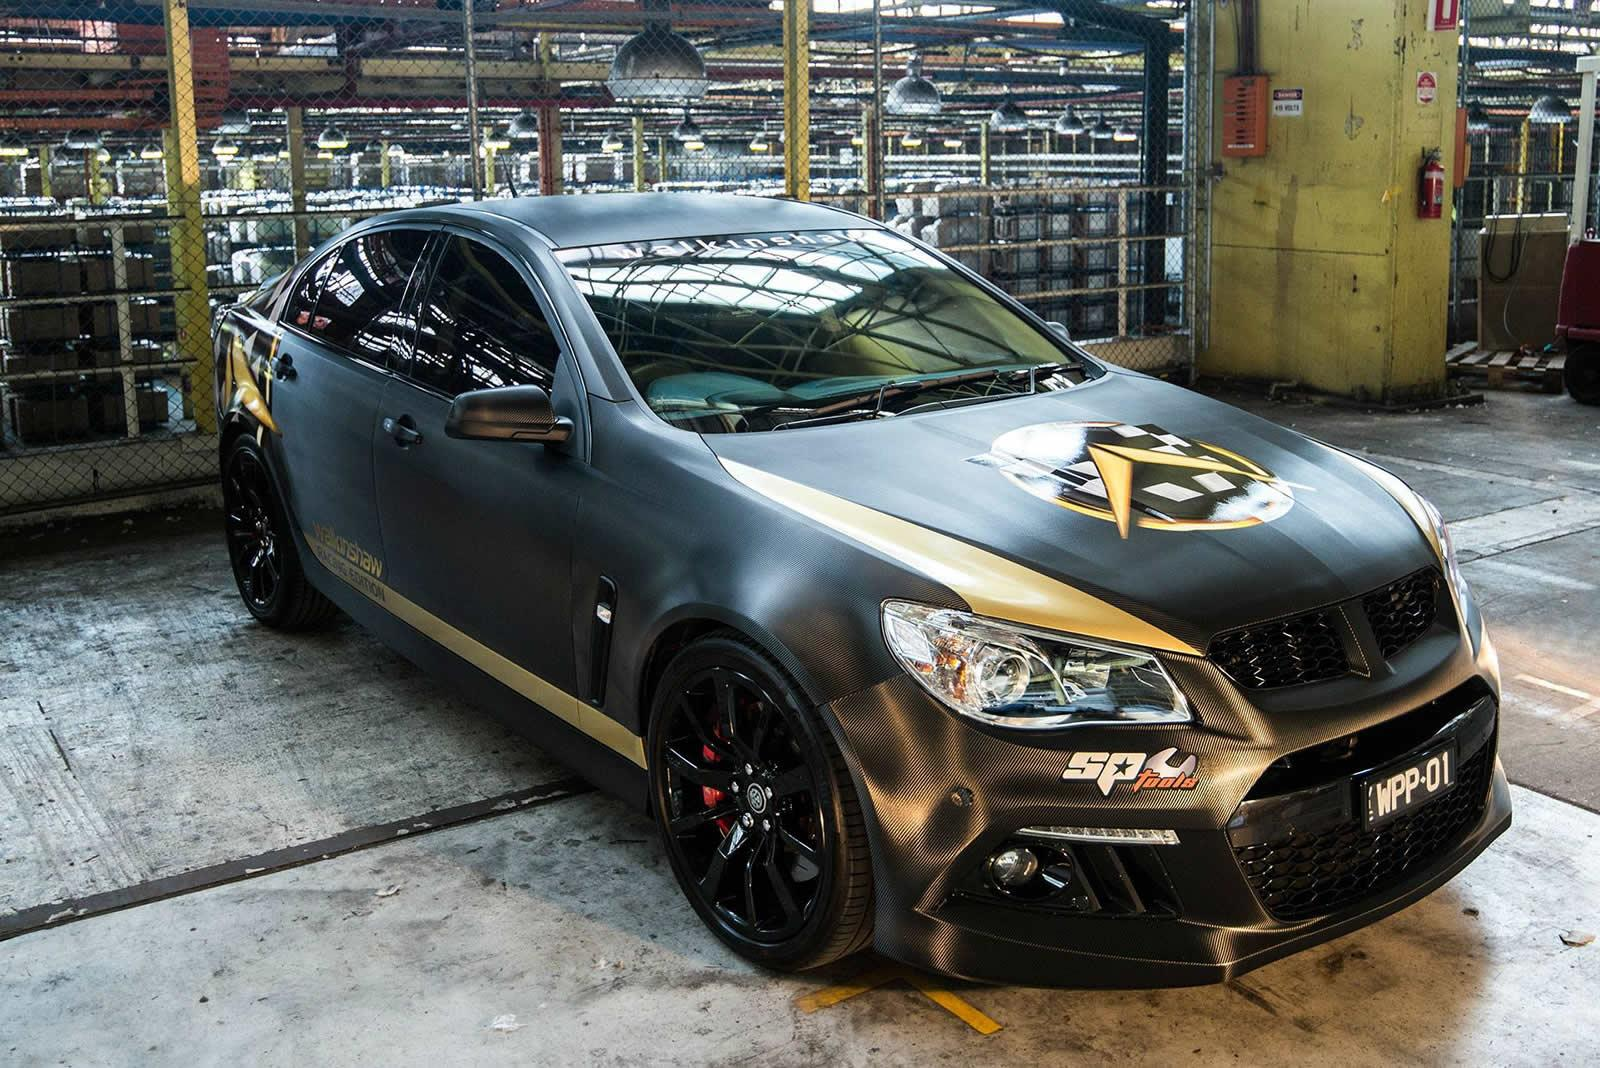 2006 - 2014 Holden Commodore Limited Edition Supercharger